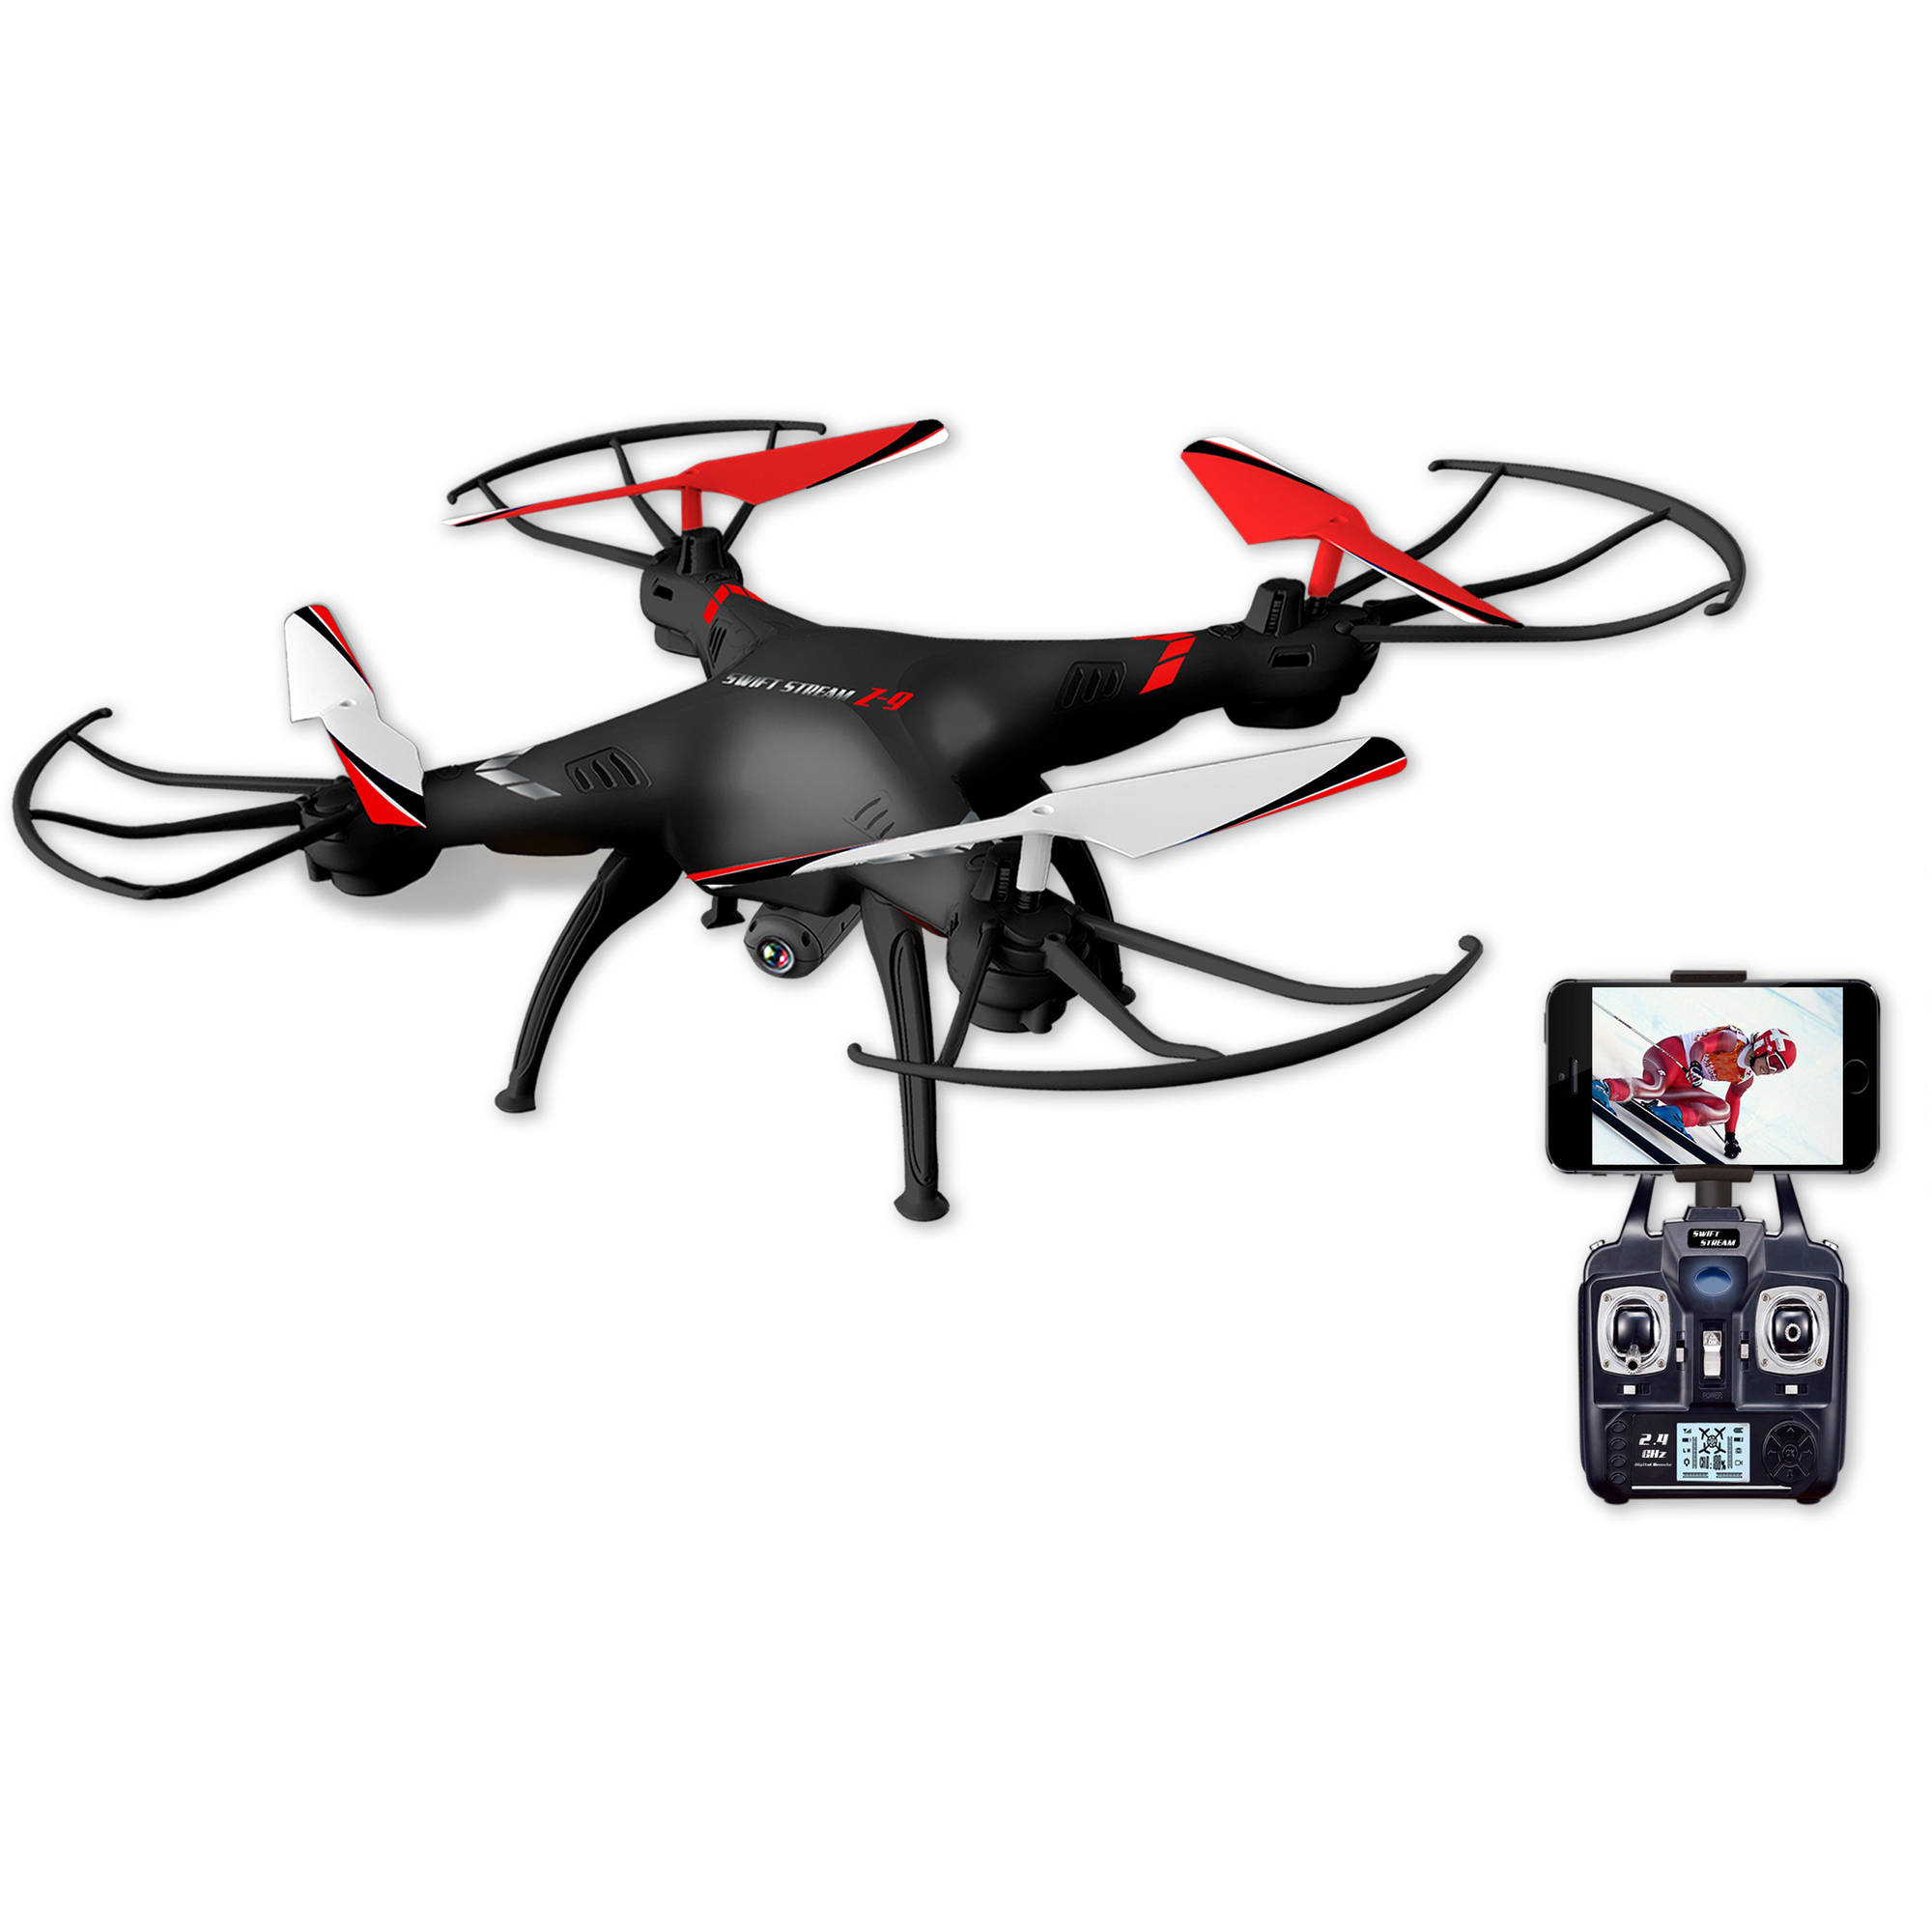 "Swift Stream Z-9 Remote Control 12"" Camera Drone, Black by Abrim Enterprises, Inc."